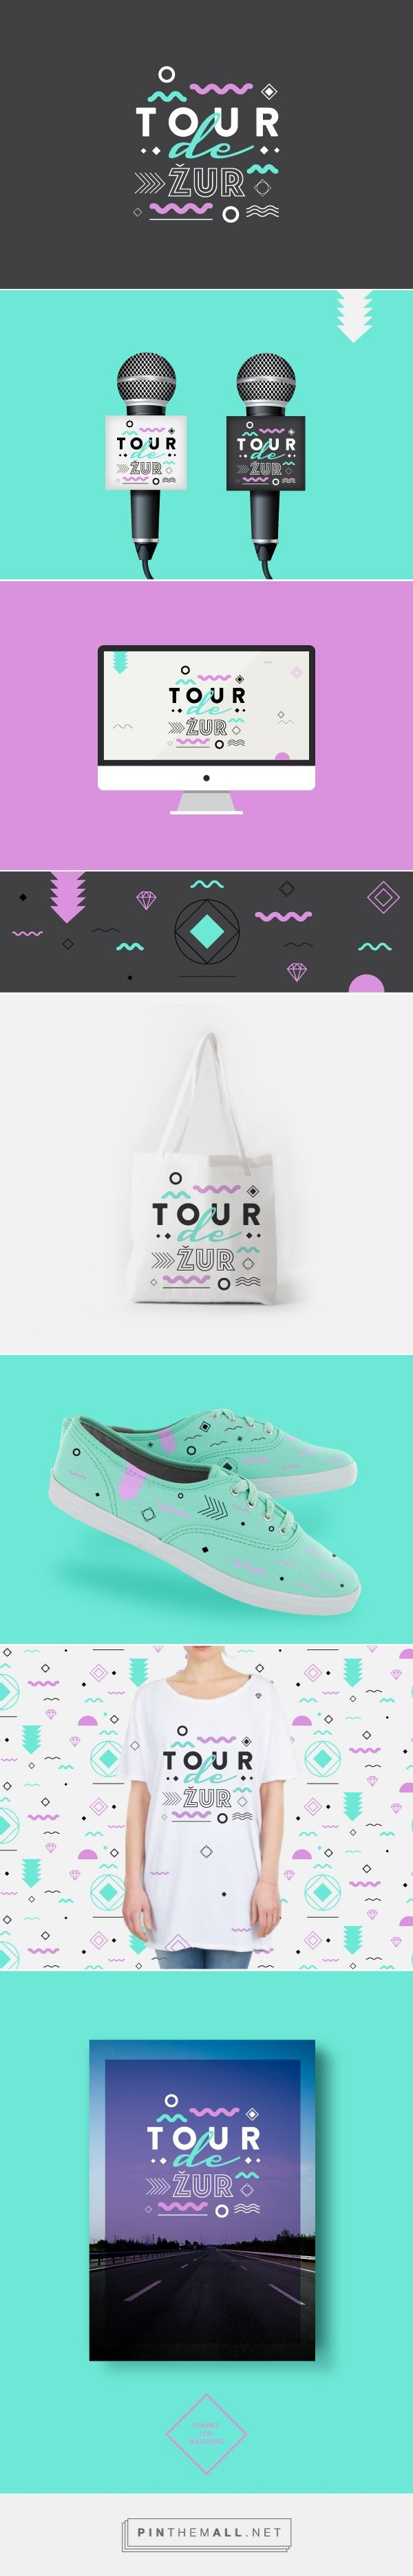 Tour de Žur on Behance | Fivestar Branding – Design and Branding Agency & Inspiration Gallery